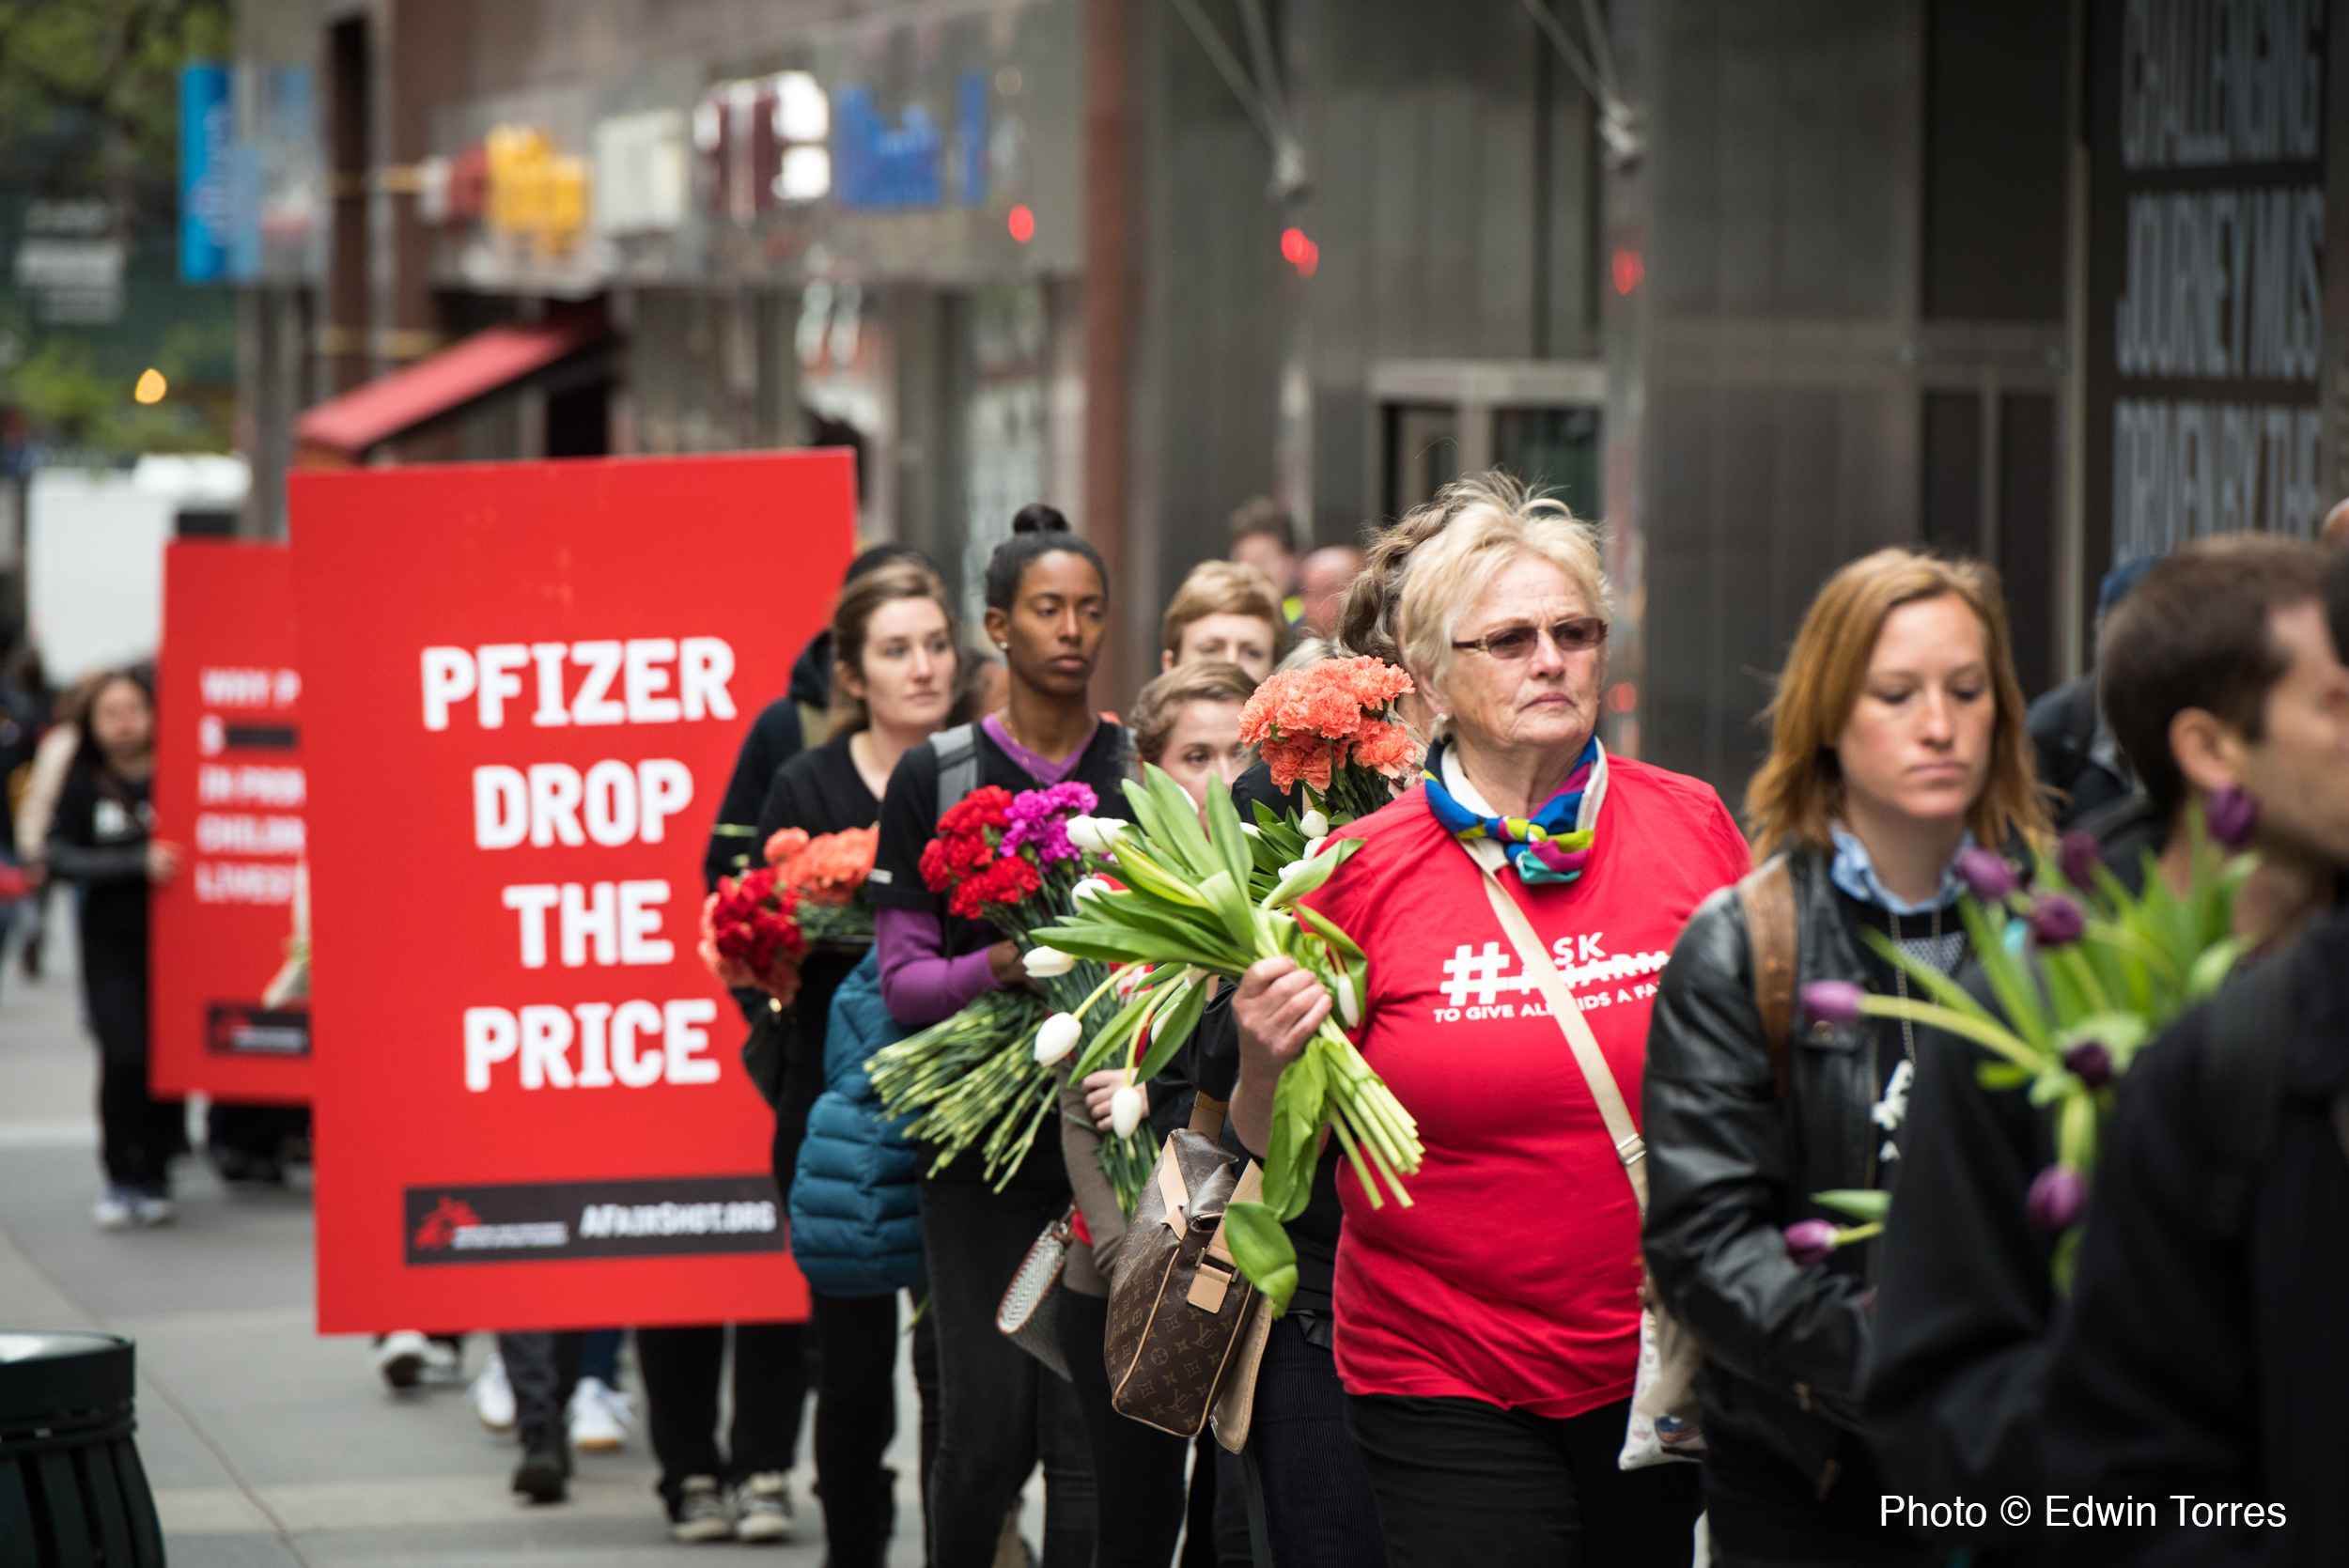 On April 27, 2016, 80+ New Yorkers participated in our petition handover at Pfizer HQ, commemorating the number of kids who die from pneumonia each day (2,500 kids).